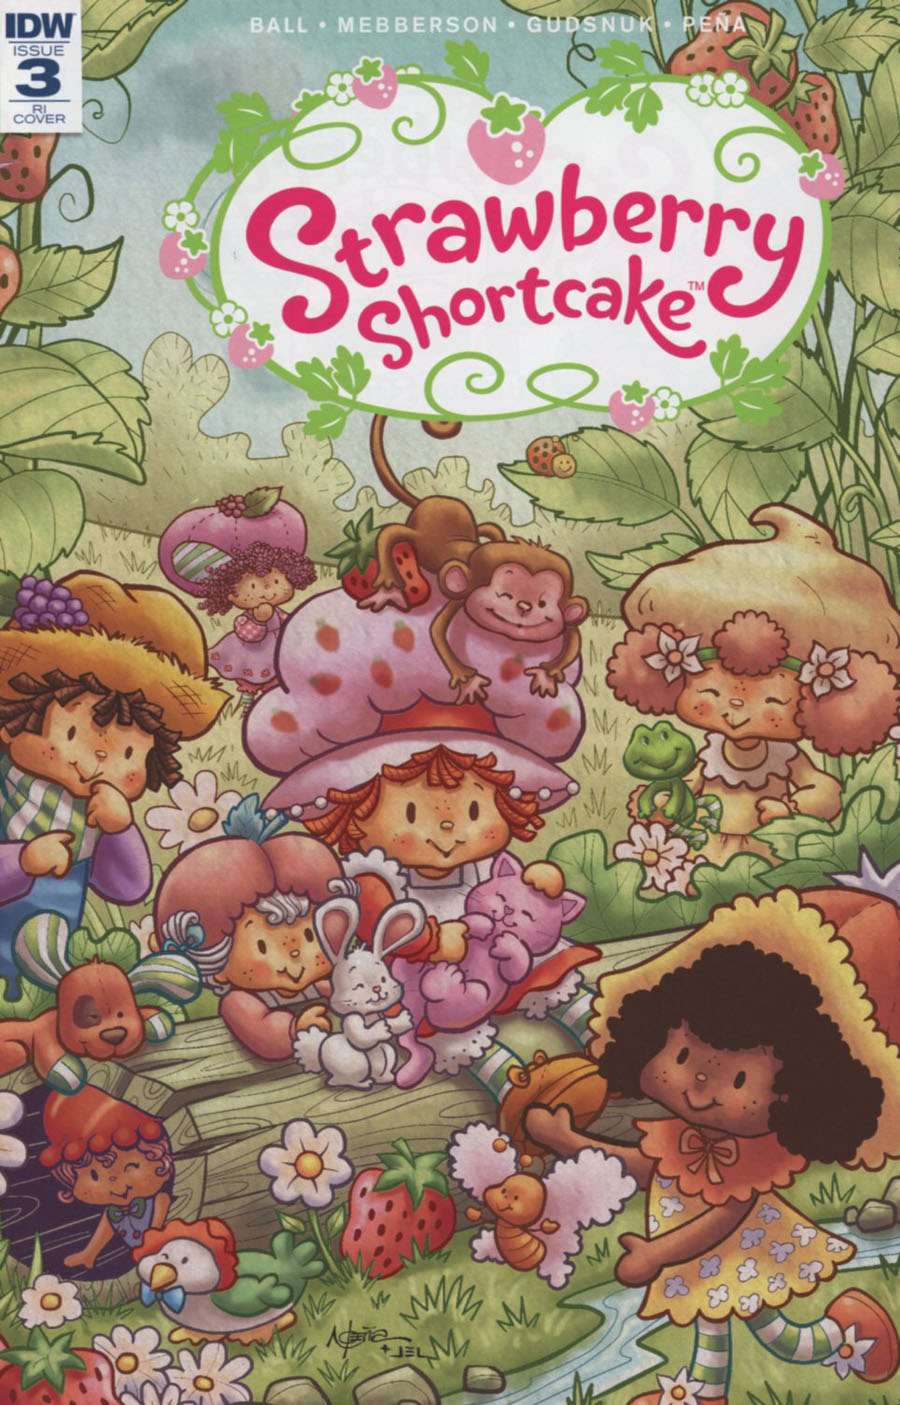 Strawberry Shortcake Vol 3 #3 Cover D Incentive Nico Pena Variant Cover